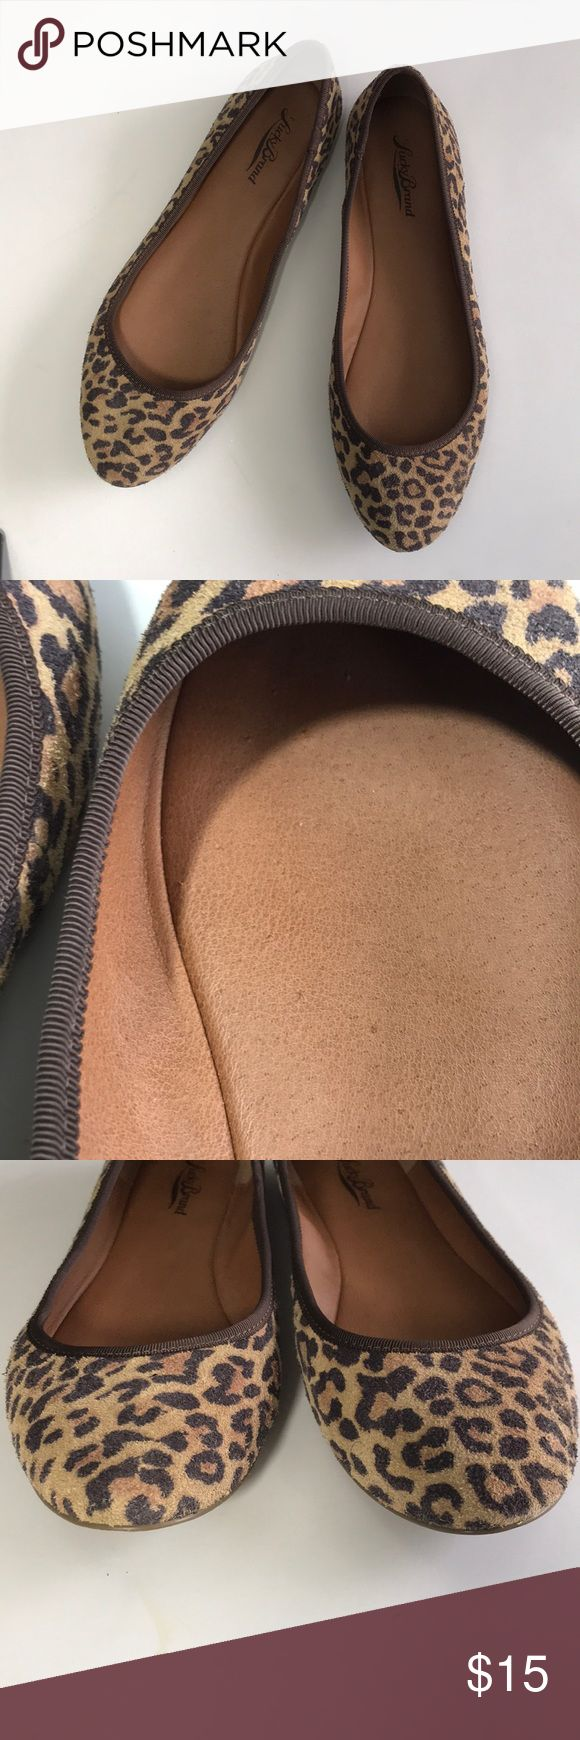 Leopard print Lucky Brand flats Leopard print Lucky Brant flats. Some little tiny scratch marks on the inside of he right shoe (pictured) that you can hardly see and can't feel. I only wore these once. Lucky Brand Shoes Flats & Loafers